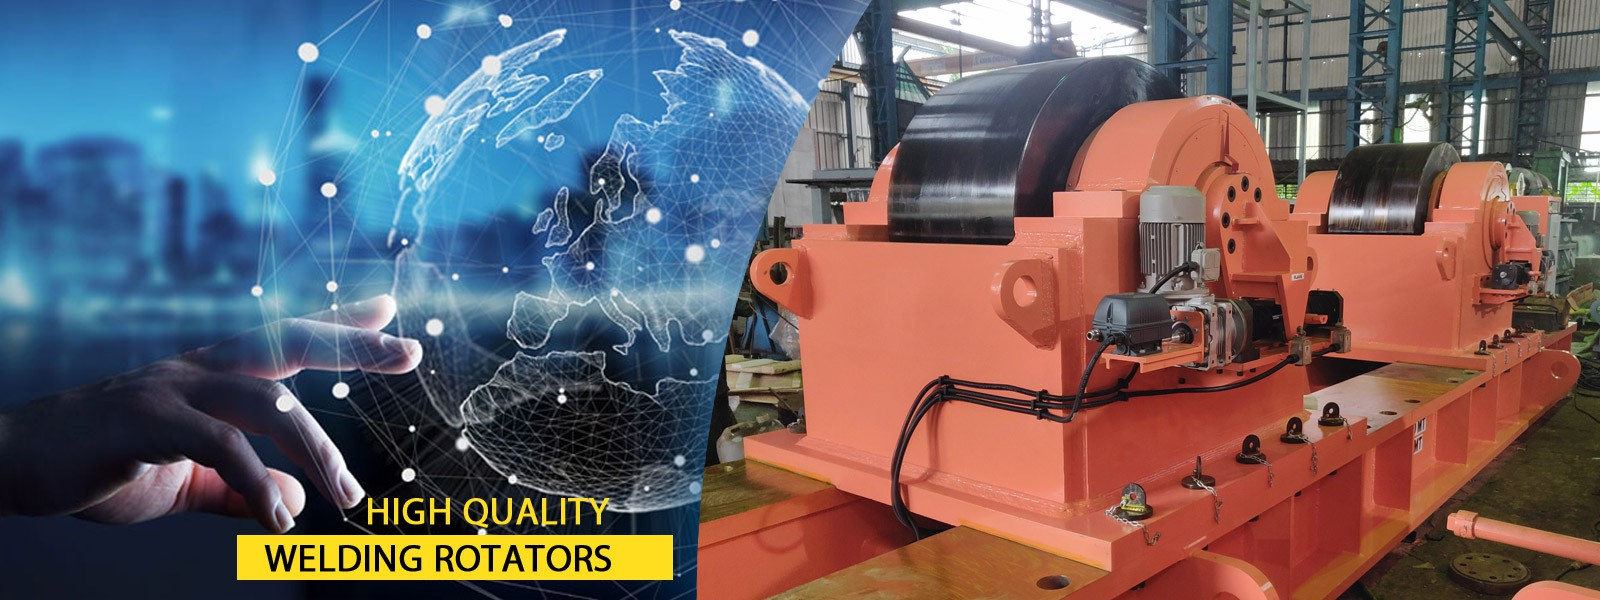 Welding Manipulators, Welding Column & Boom, Customized Special Purpose Machines